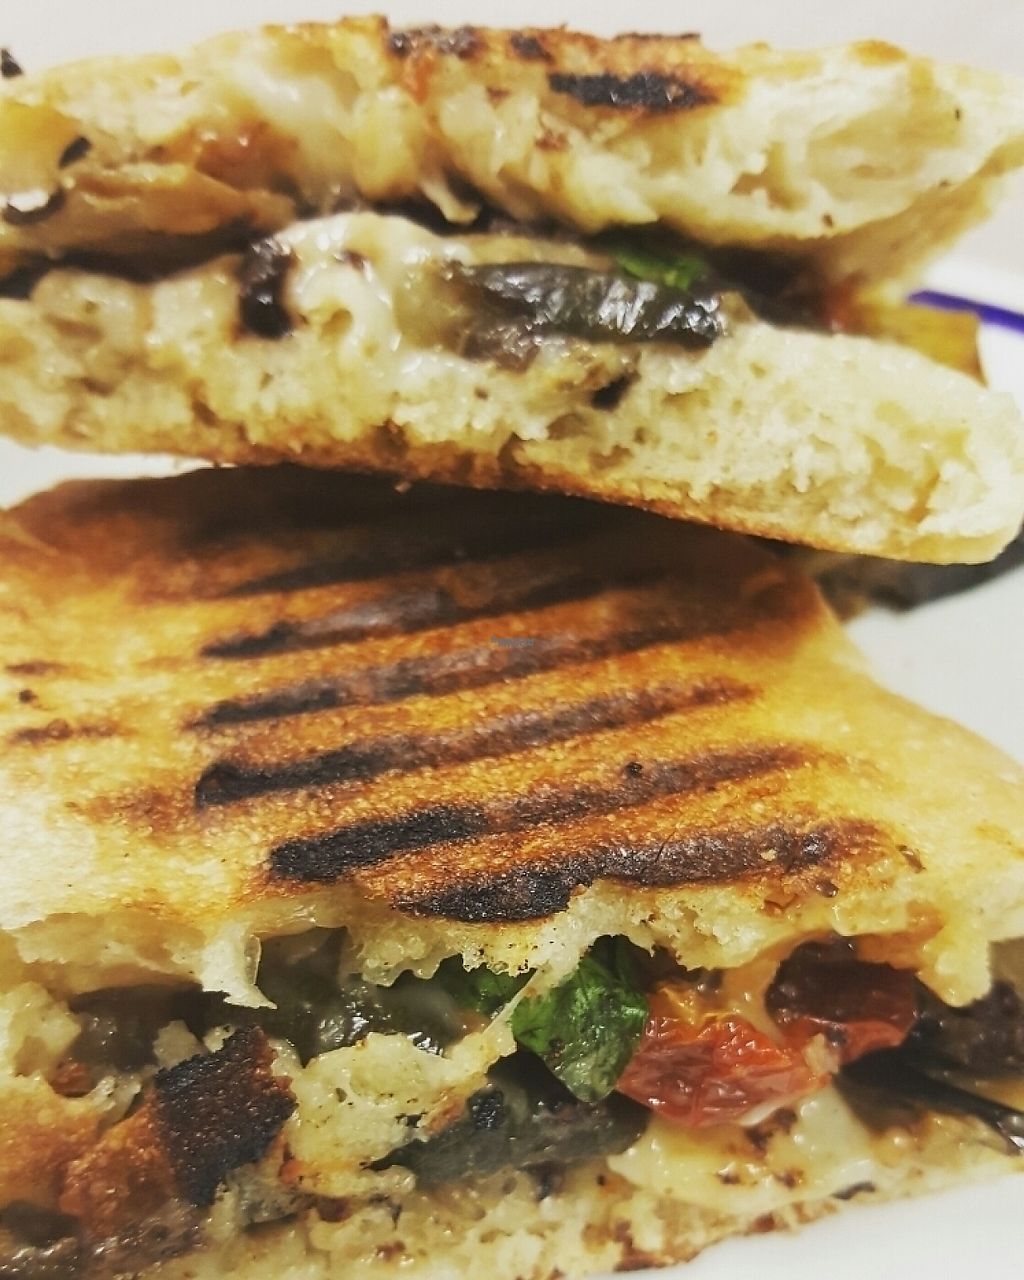 """Photo of CLOSED: Sicily to Seattle  by <a href=""""/members/profile/ramaishaya"""">ramaishaya</a> <br/>Grilled Veg Panini with vegan mozzarella, sundried tomato & garlic infused olive oil   <br/> January 10, 2017  - <a href='/contact/abuse/image/83425/210369'>Report</a>"""